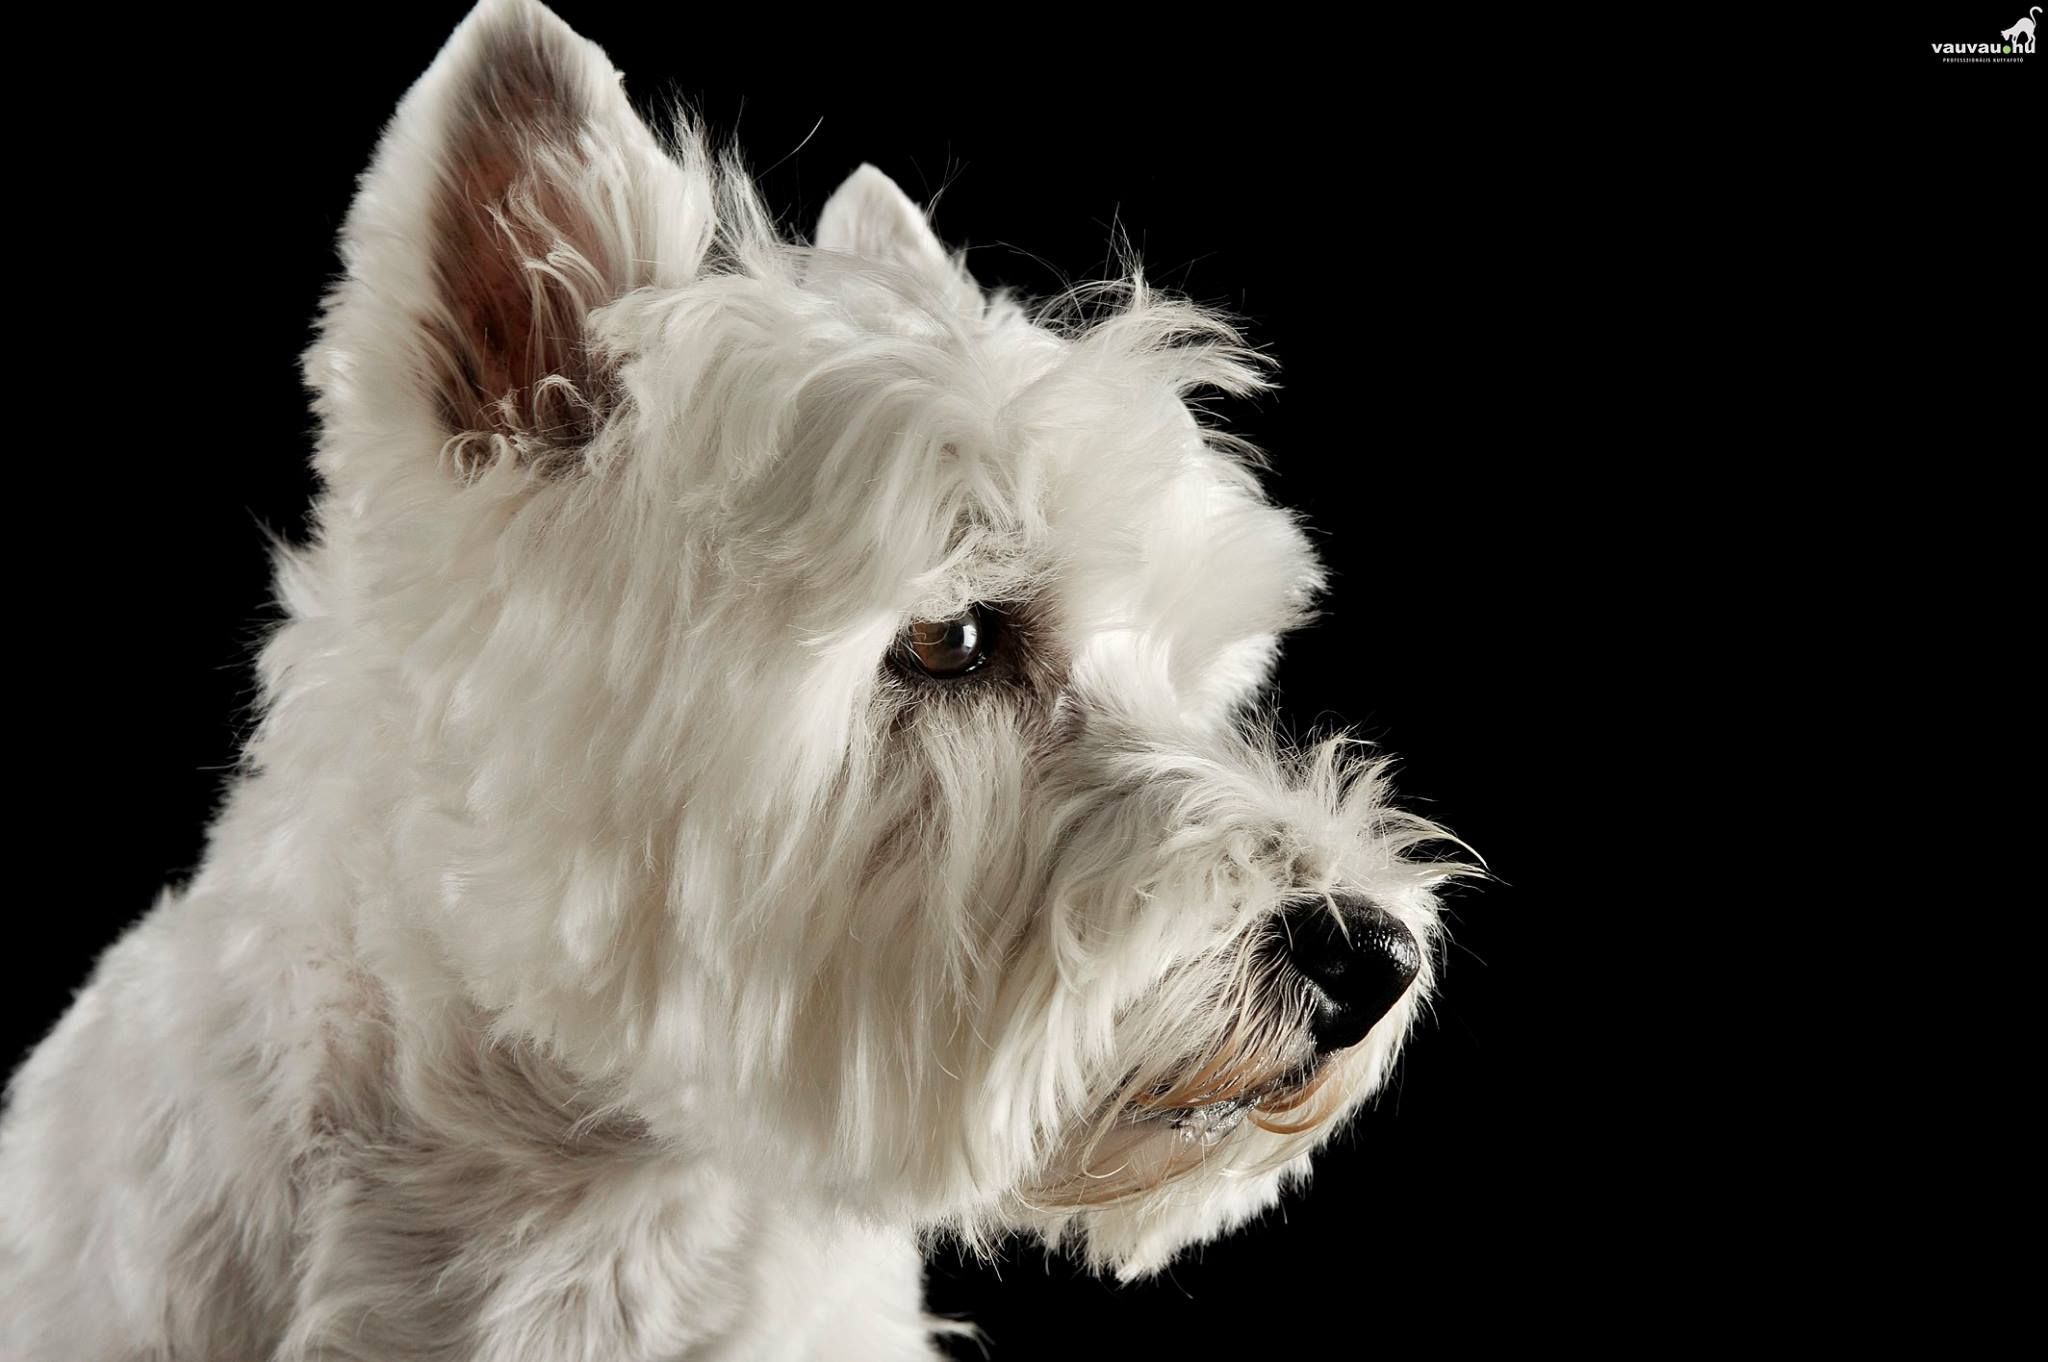 Wrangler is an adoptable West Highland White Terrier